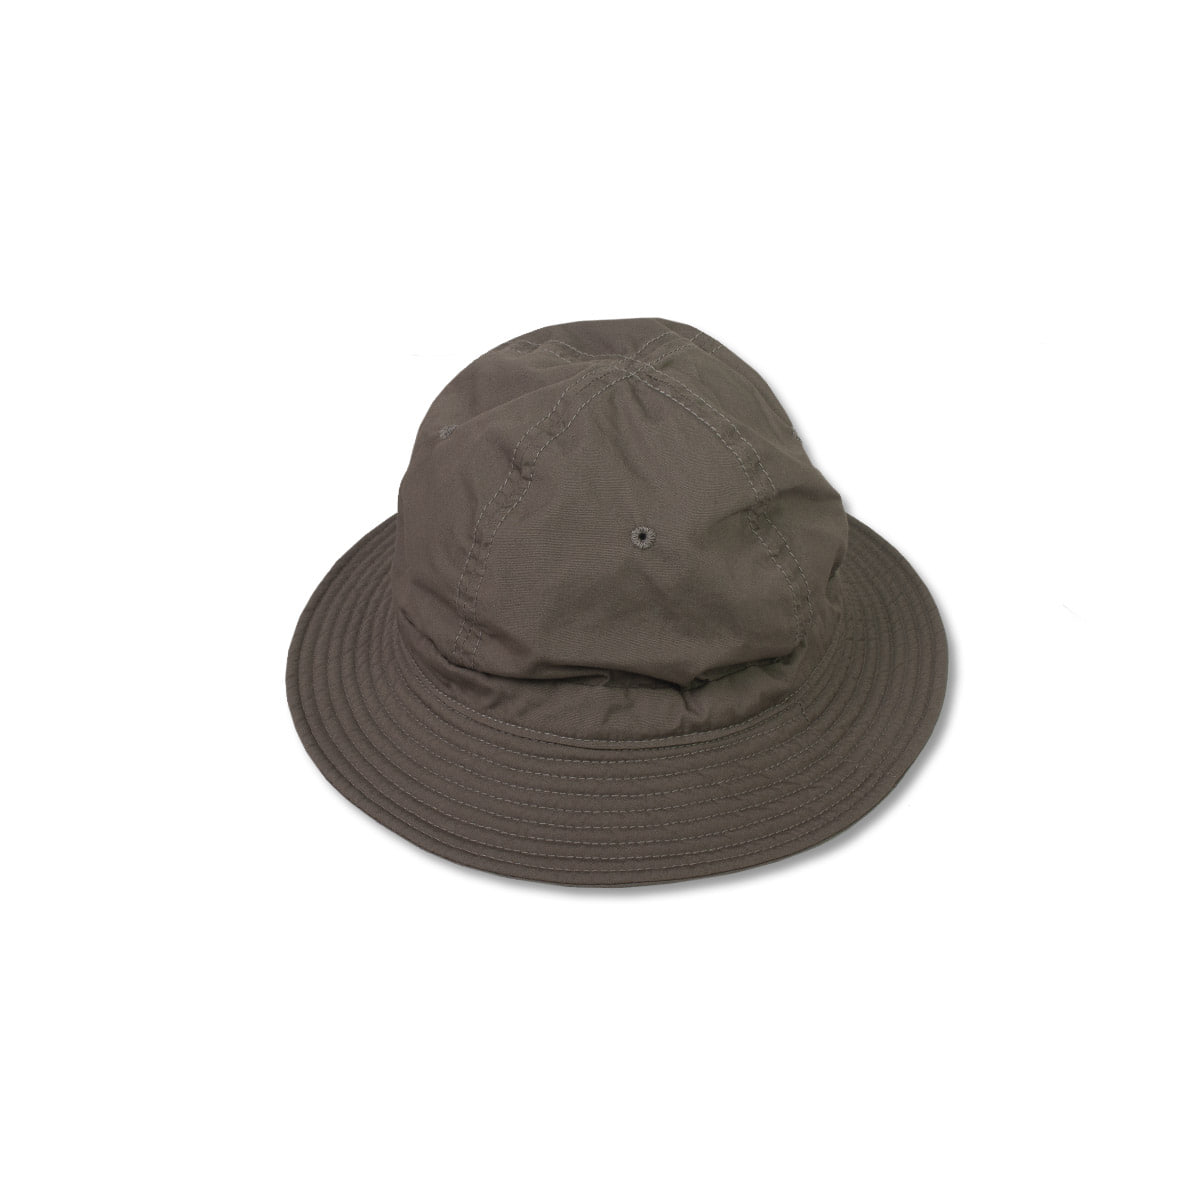 [DECHO] HUNTER HAT -VENTILE- 'BEIGE'